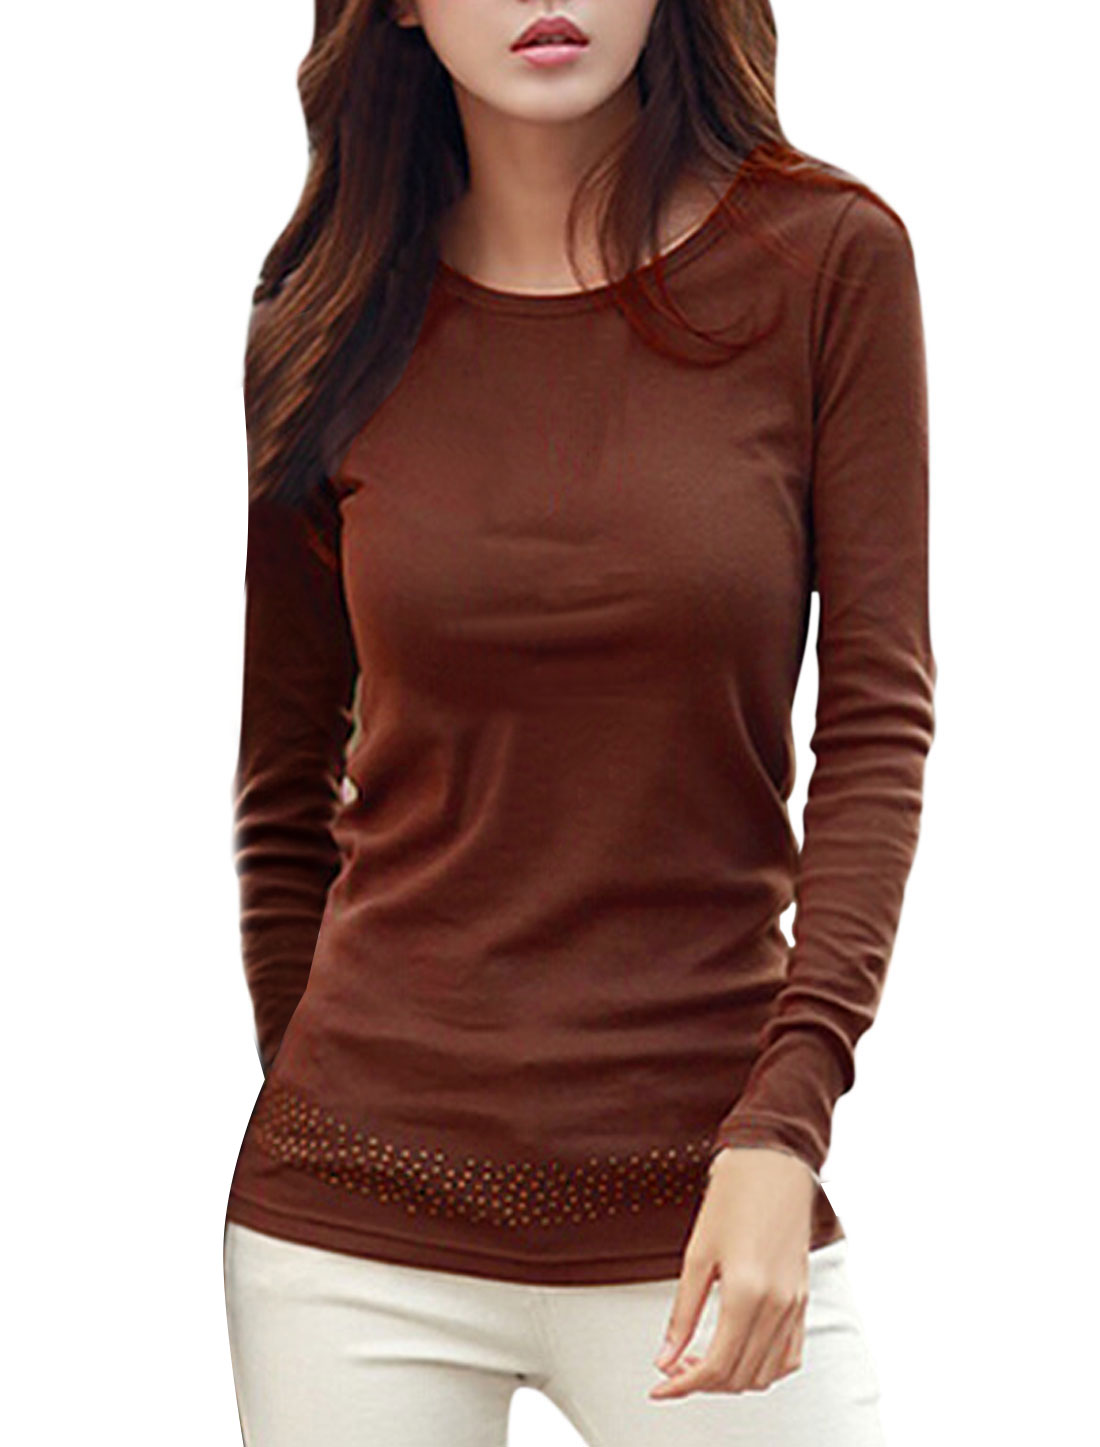 Ladies Round Neck Long Sleeves Casual Tunic Top Brown M